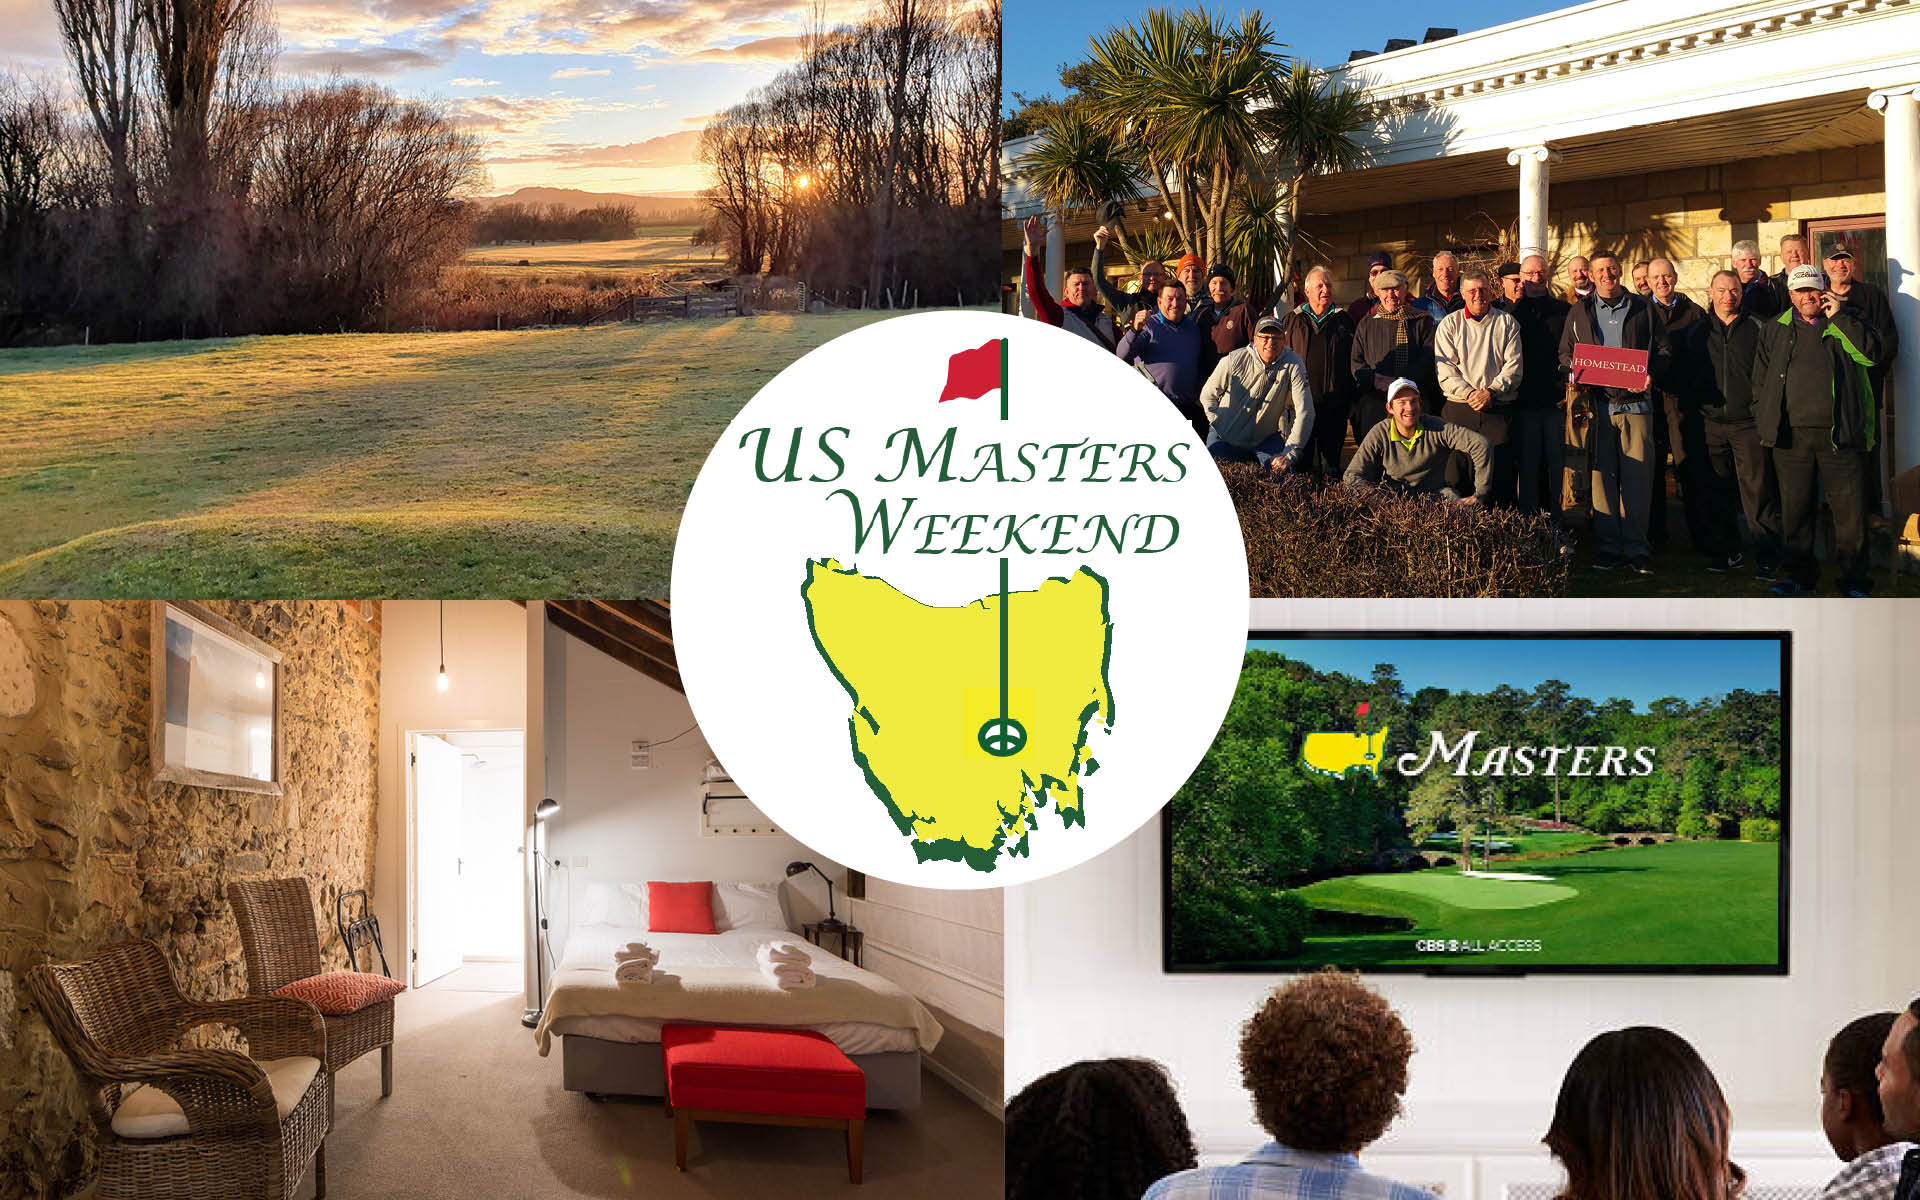 US Masters Weekend: Sunday 11 April, 2021